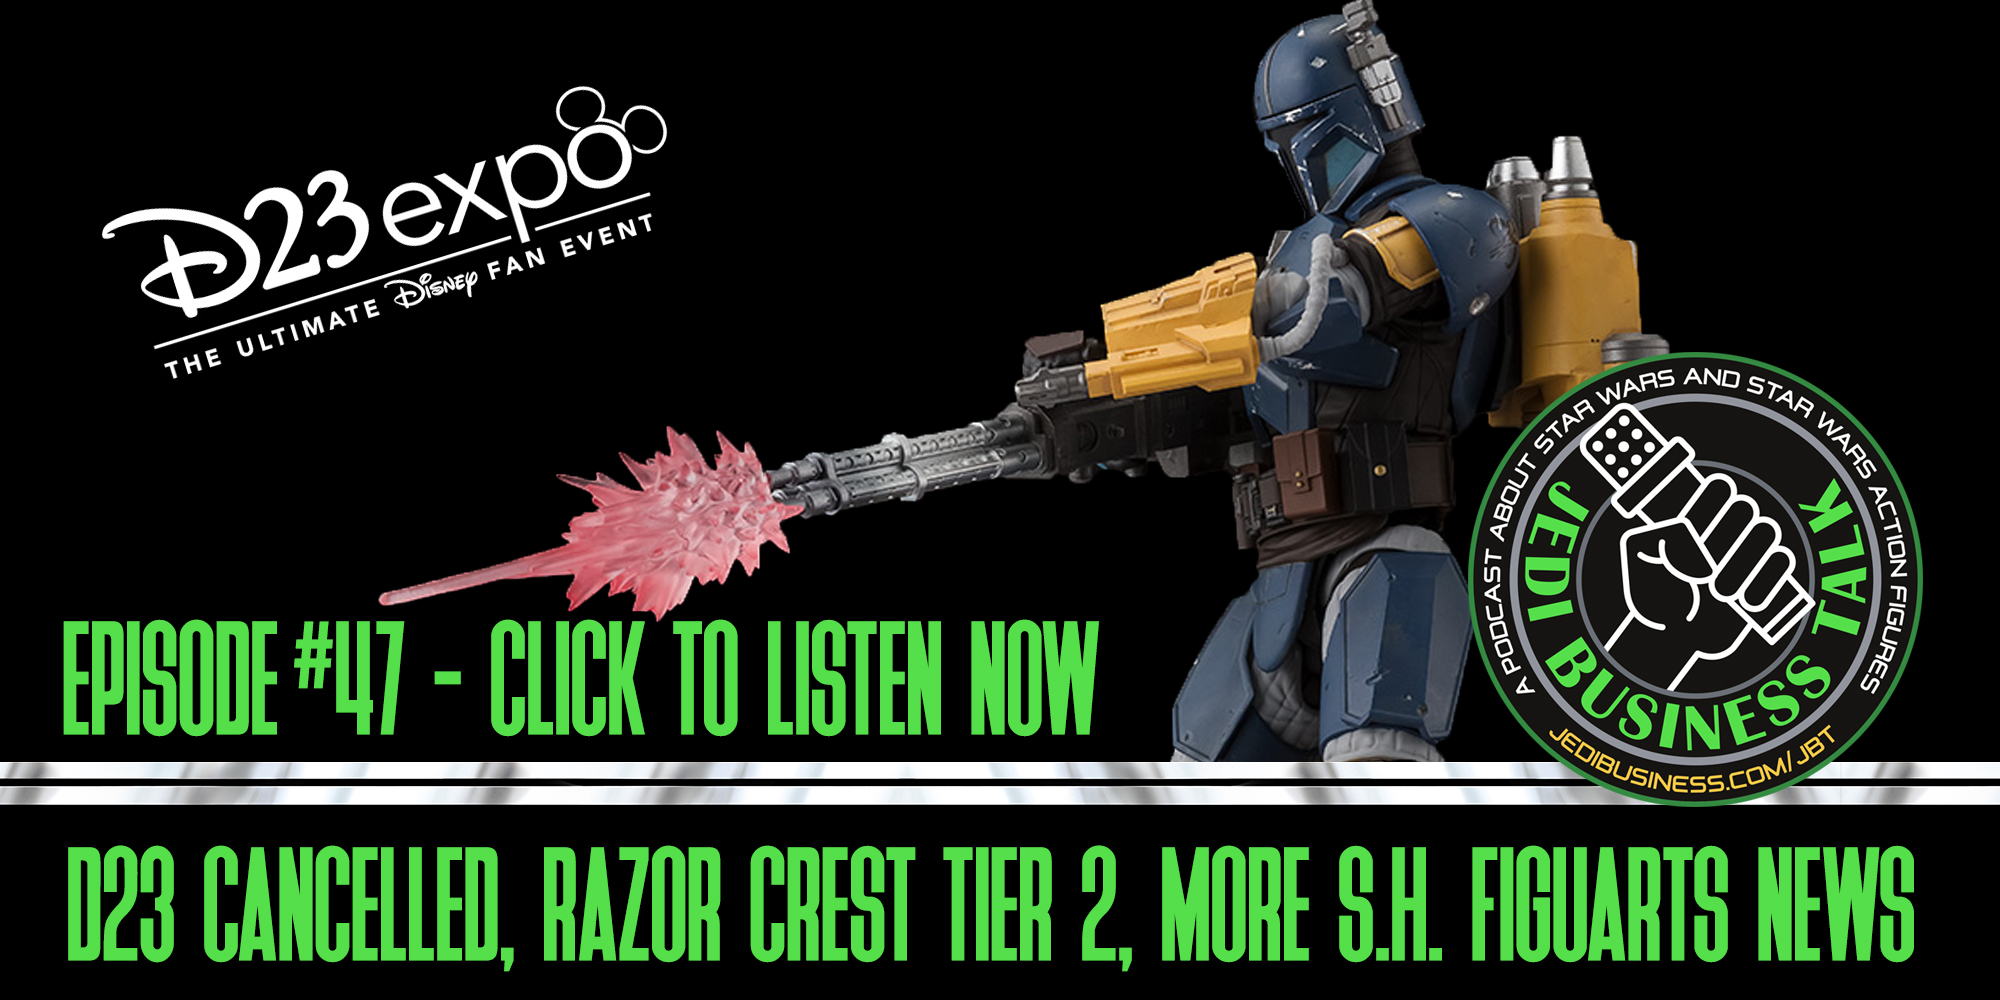 JBT Jedi Business Talk - D23  Cancelled,  Razor Crest Tier 2, More S.H. Figuarts News